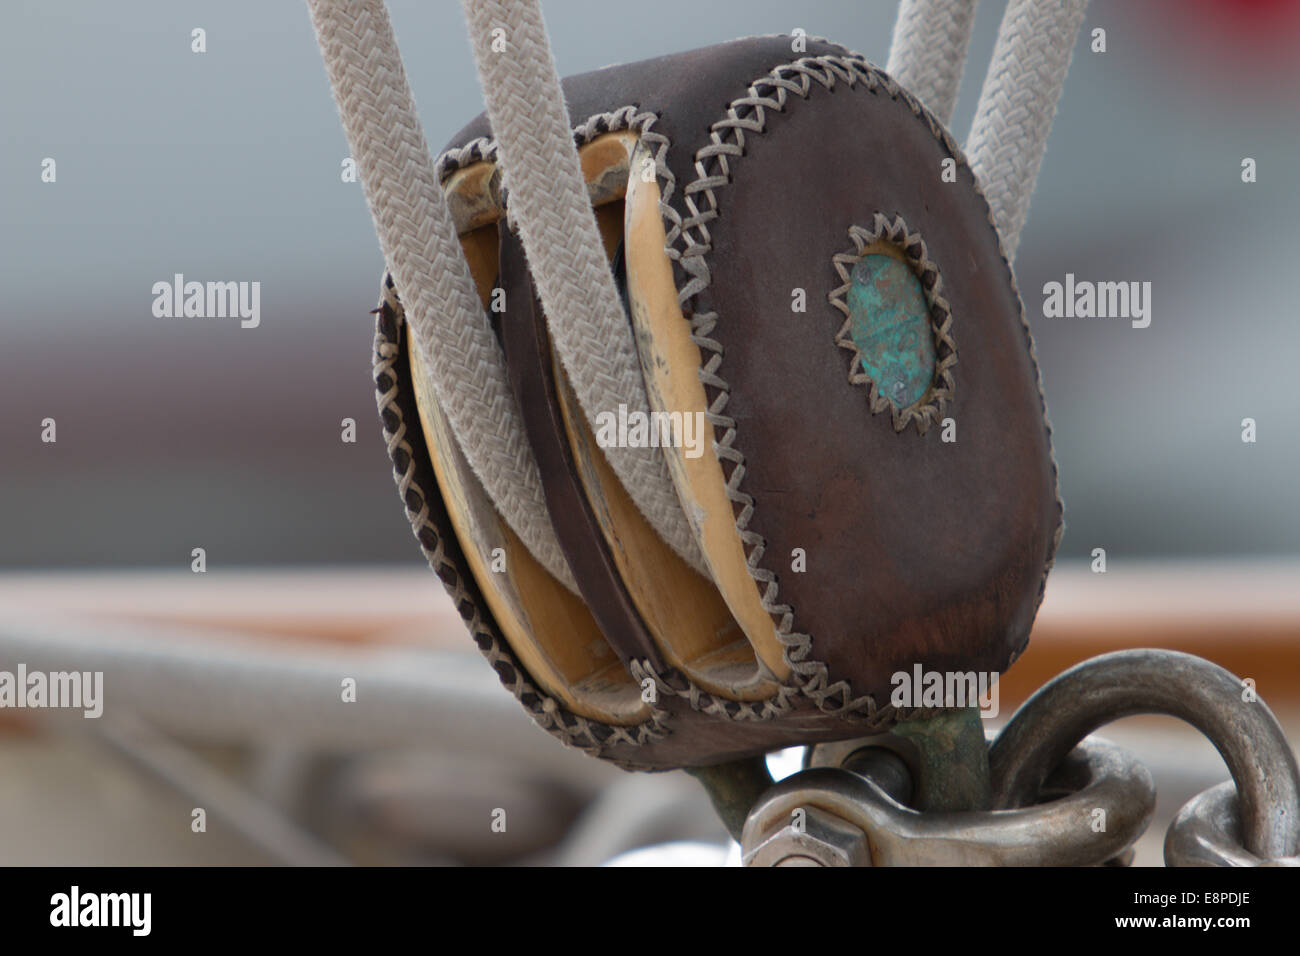 Classic yacht pulley - Stock Image